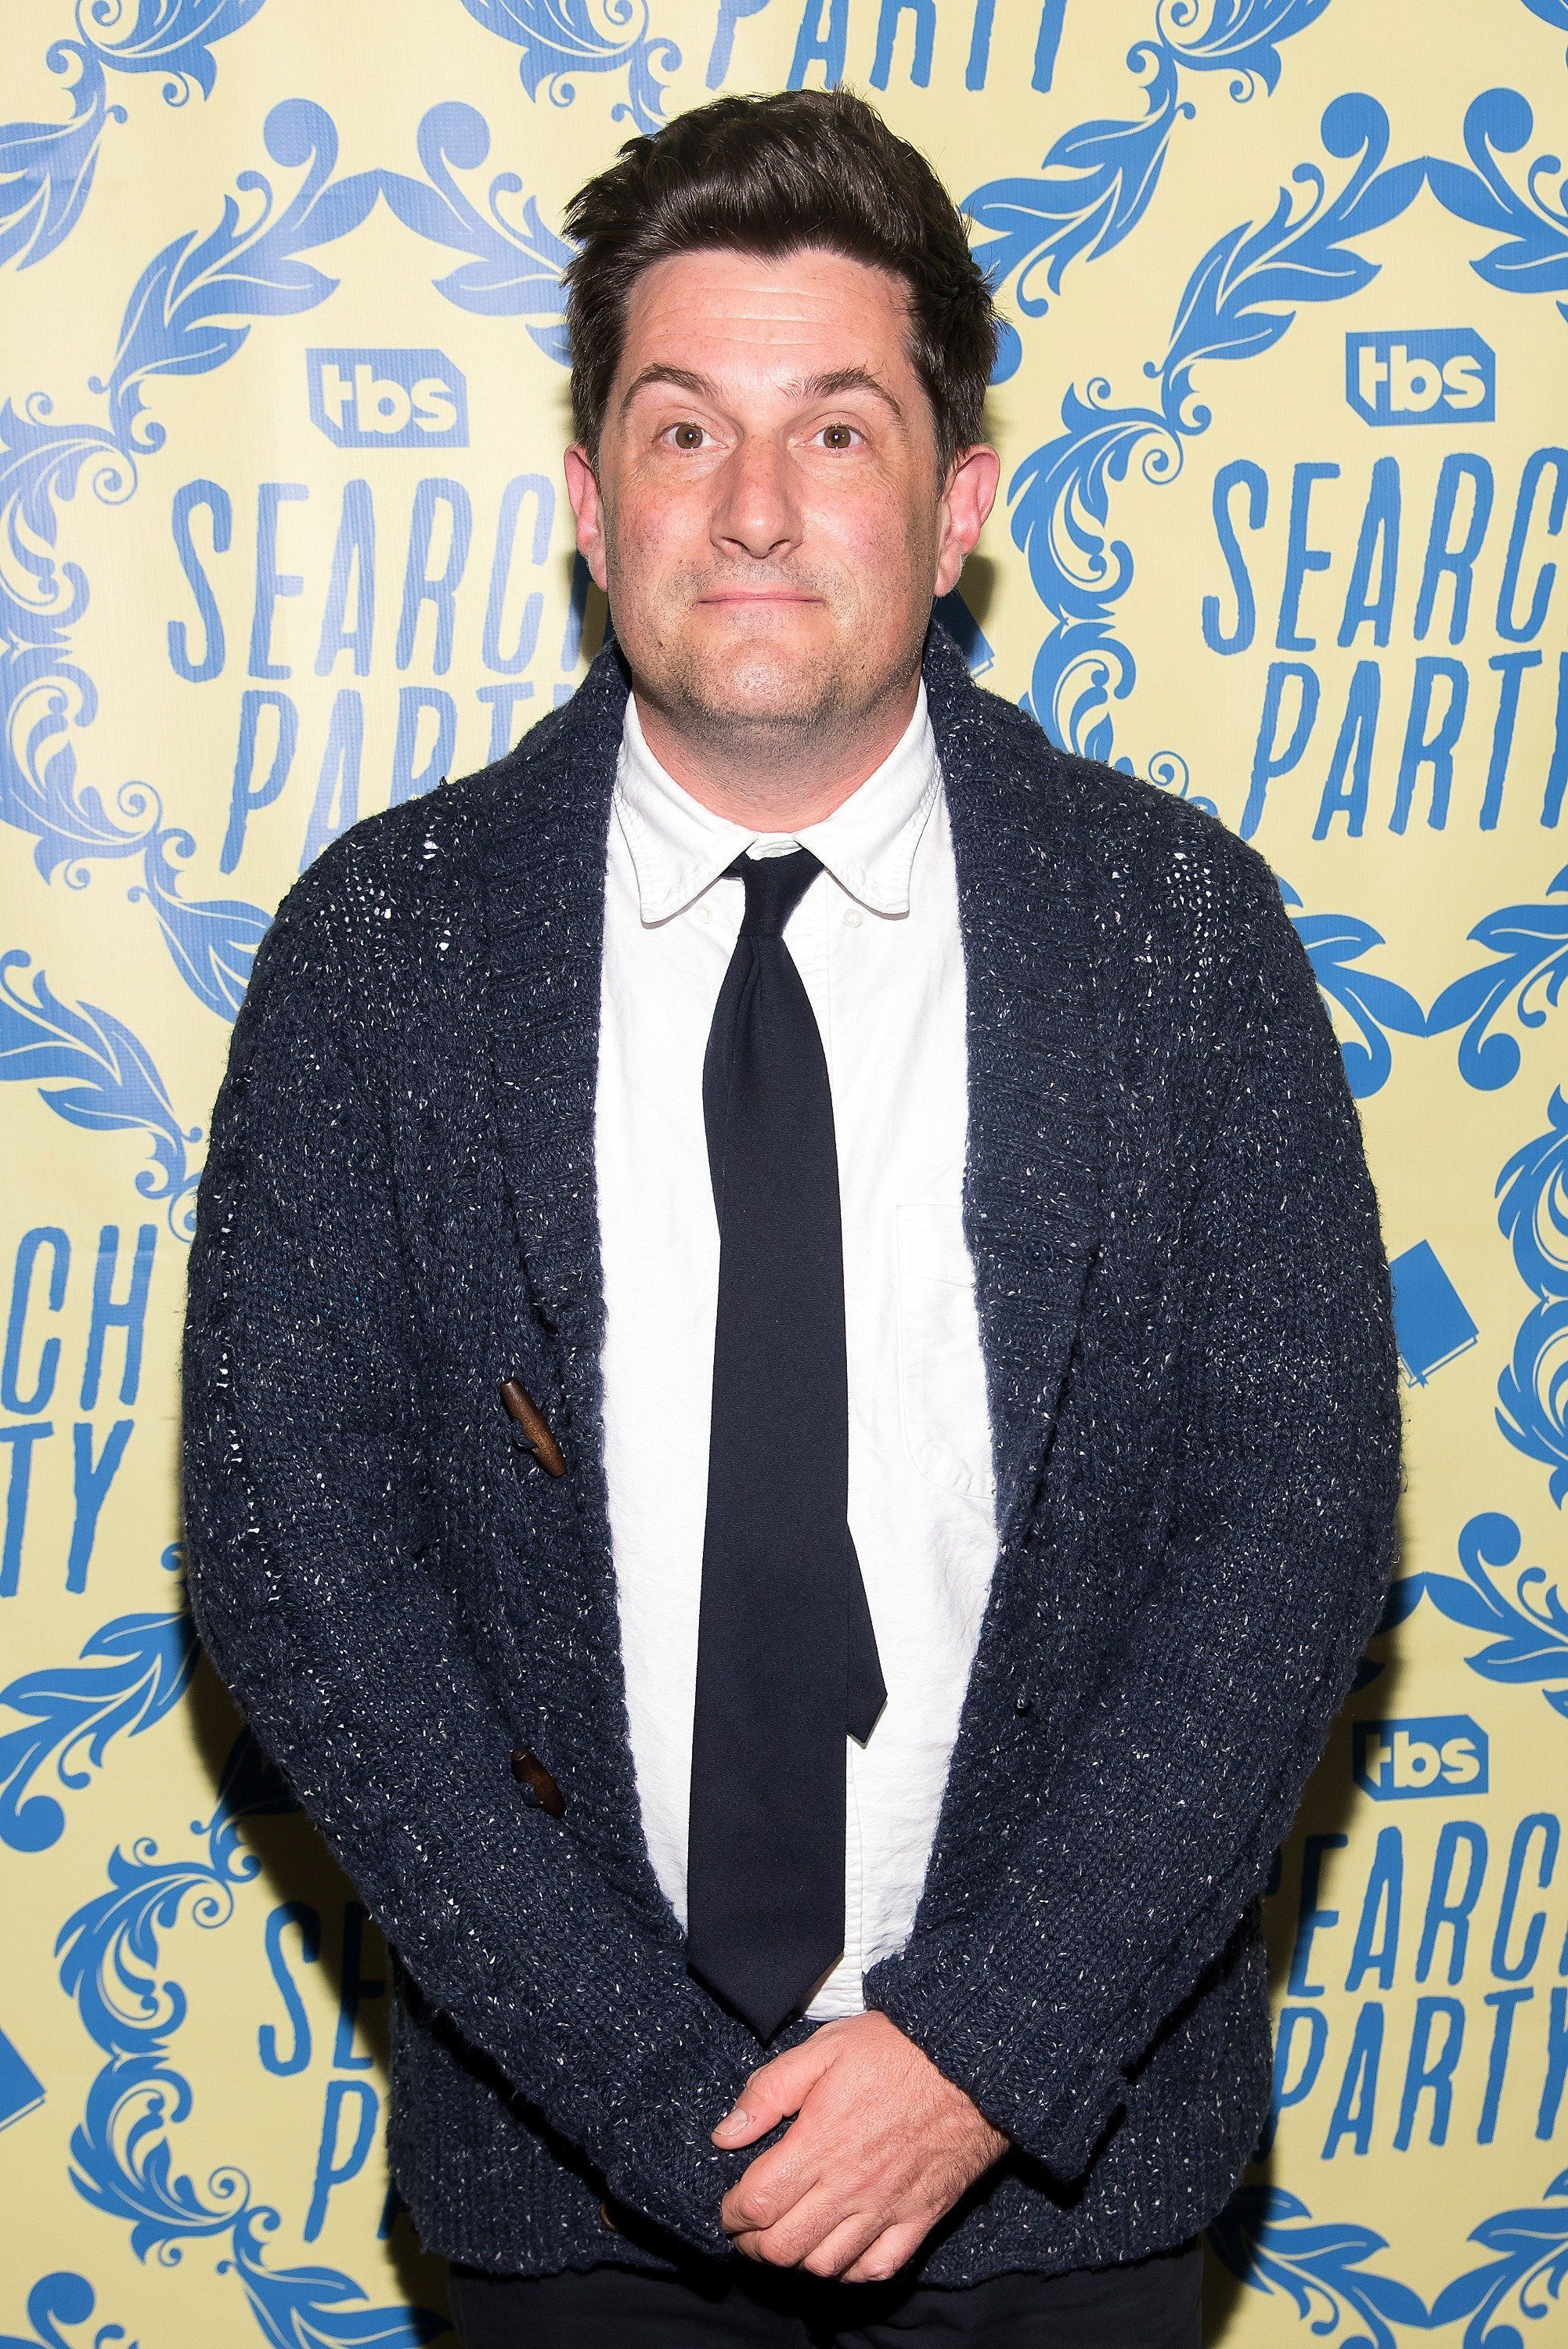 NEW YORK, NY - NOVEMBER 16:  Executive Producer Michael Showalter attends the 'Search Party' Premiere Party at Metrograph on November 16, 2016 in New York City.  (Photo by Mike Pont/WireImage)